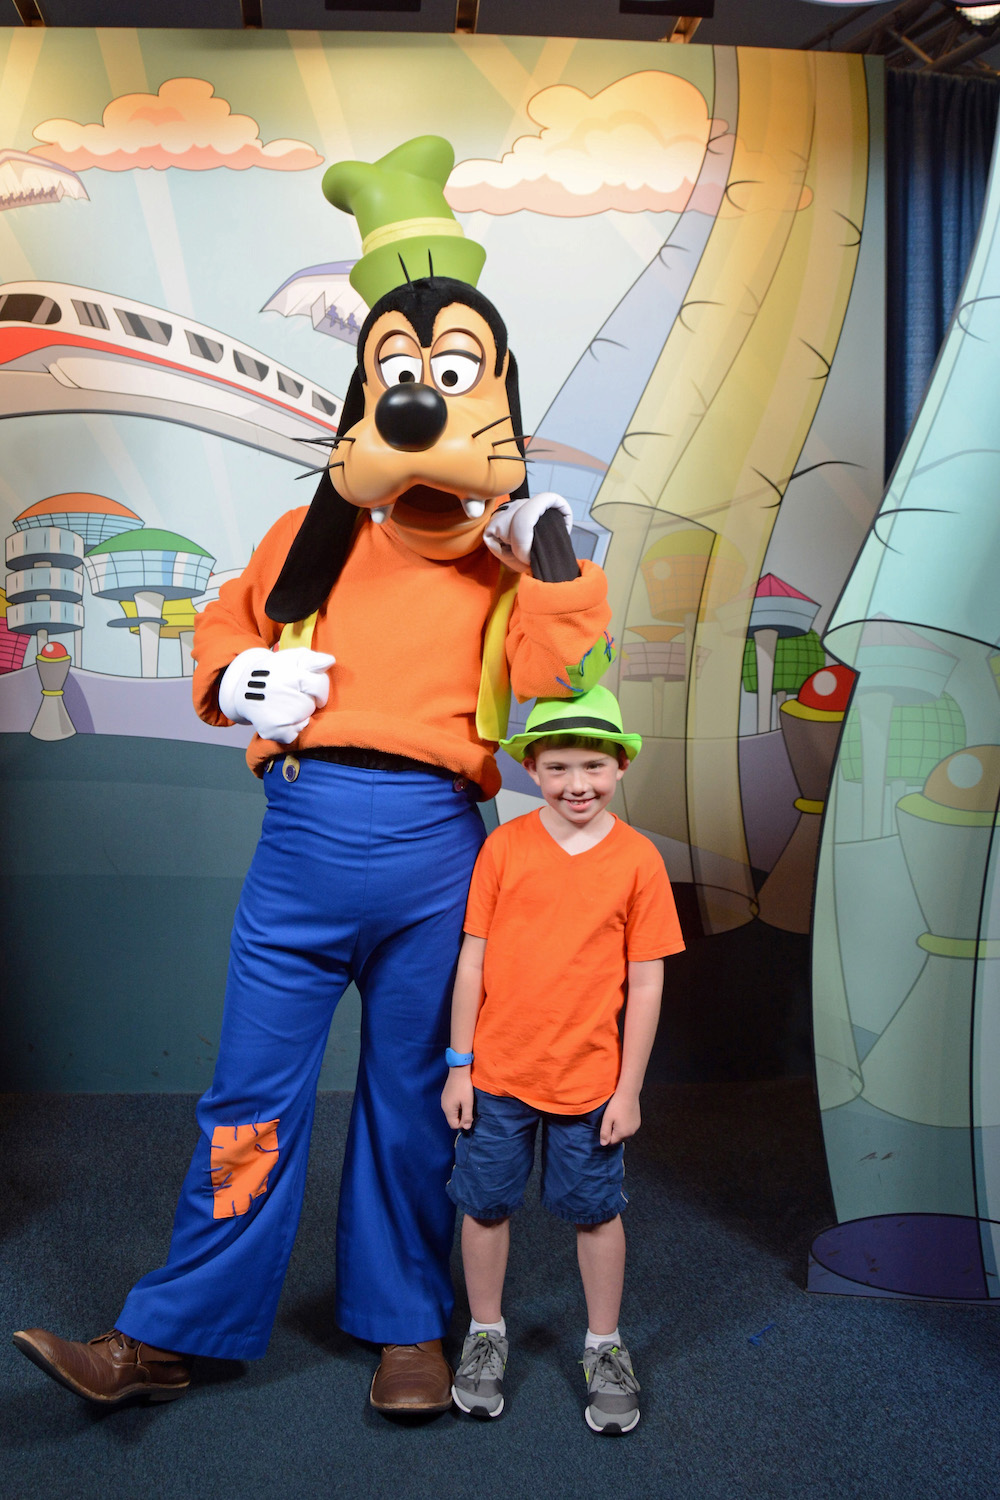 An easy way to pack in more fun on a Disney trip is by disneybounding. Check my adorable disneybounding ideas for kids, my boys had a lot of fun with it.